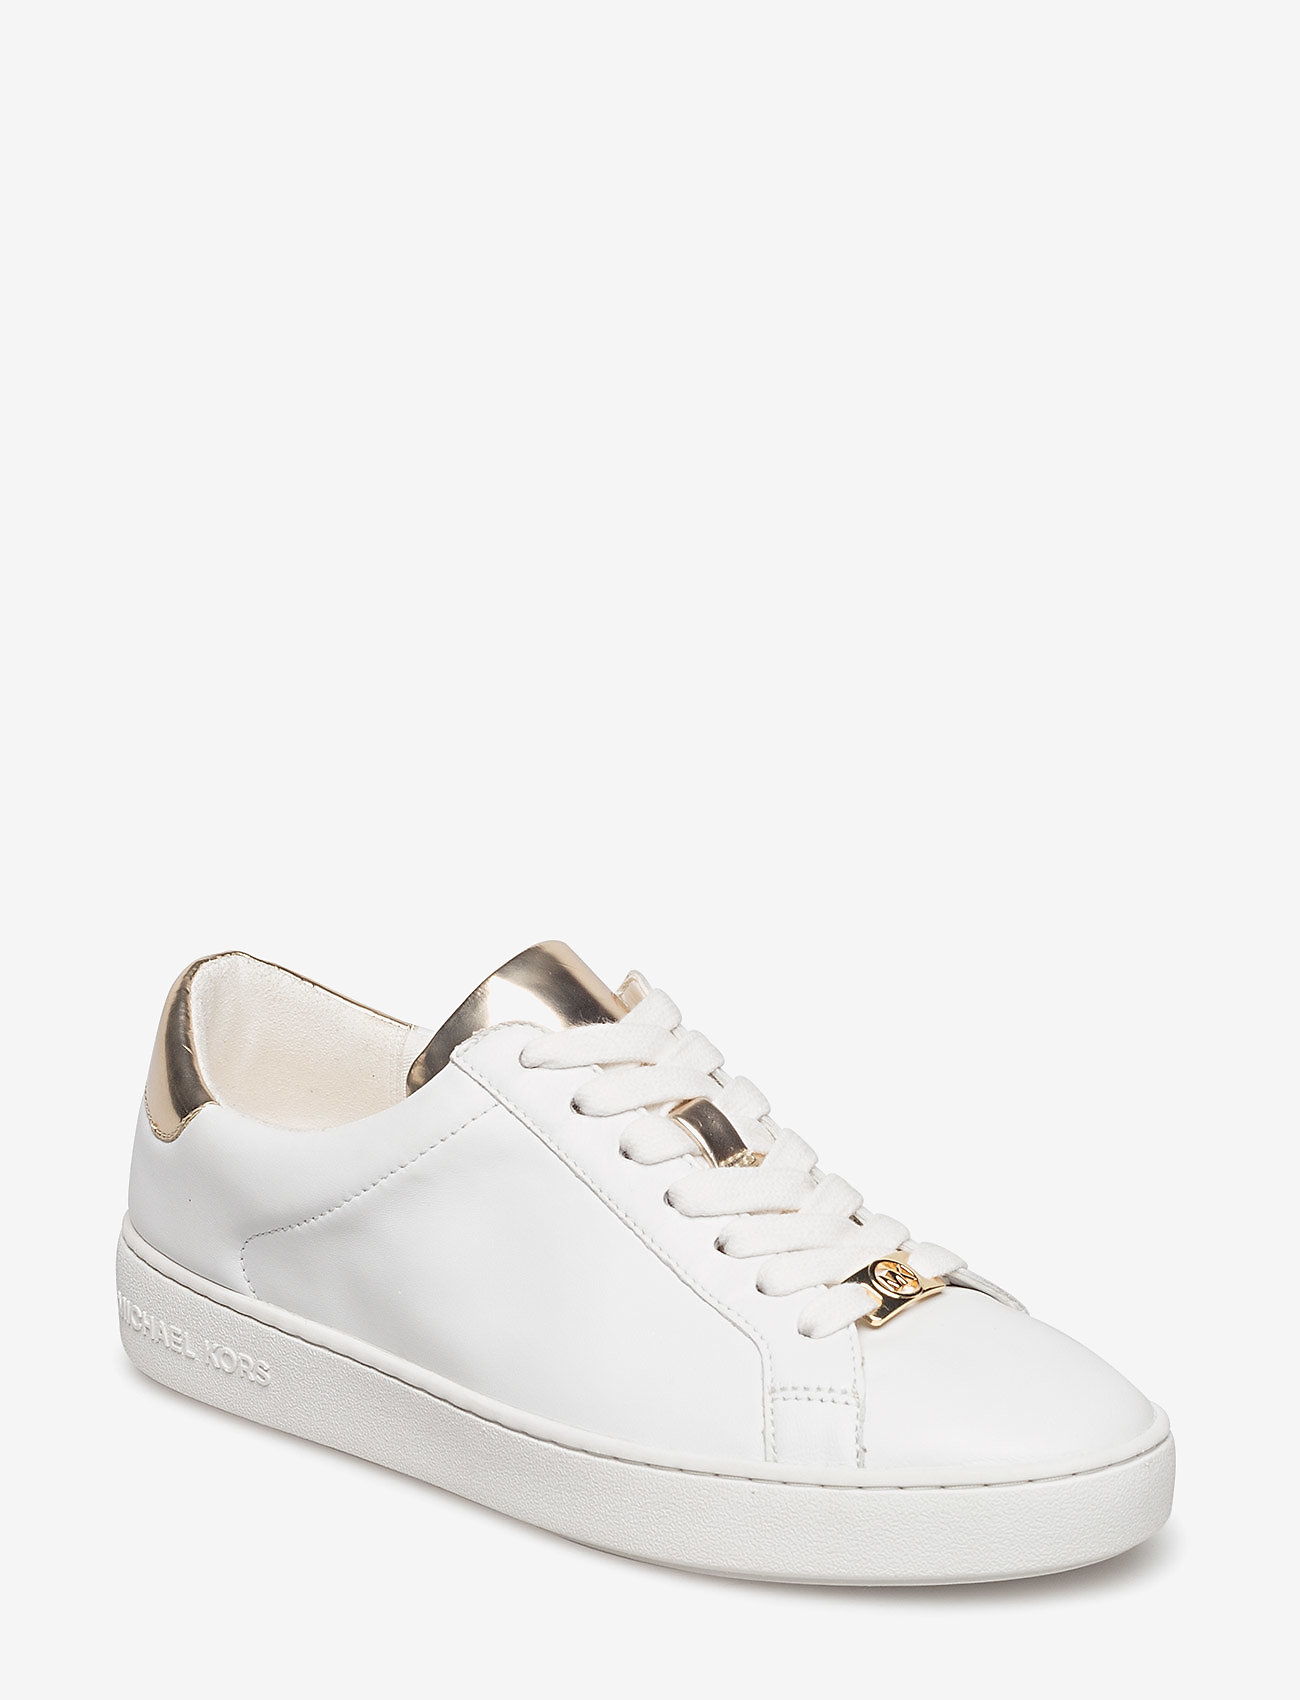 Michael Kors Shoes - IRVING LACE UP - lage sneakers - opt/plgold - 0